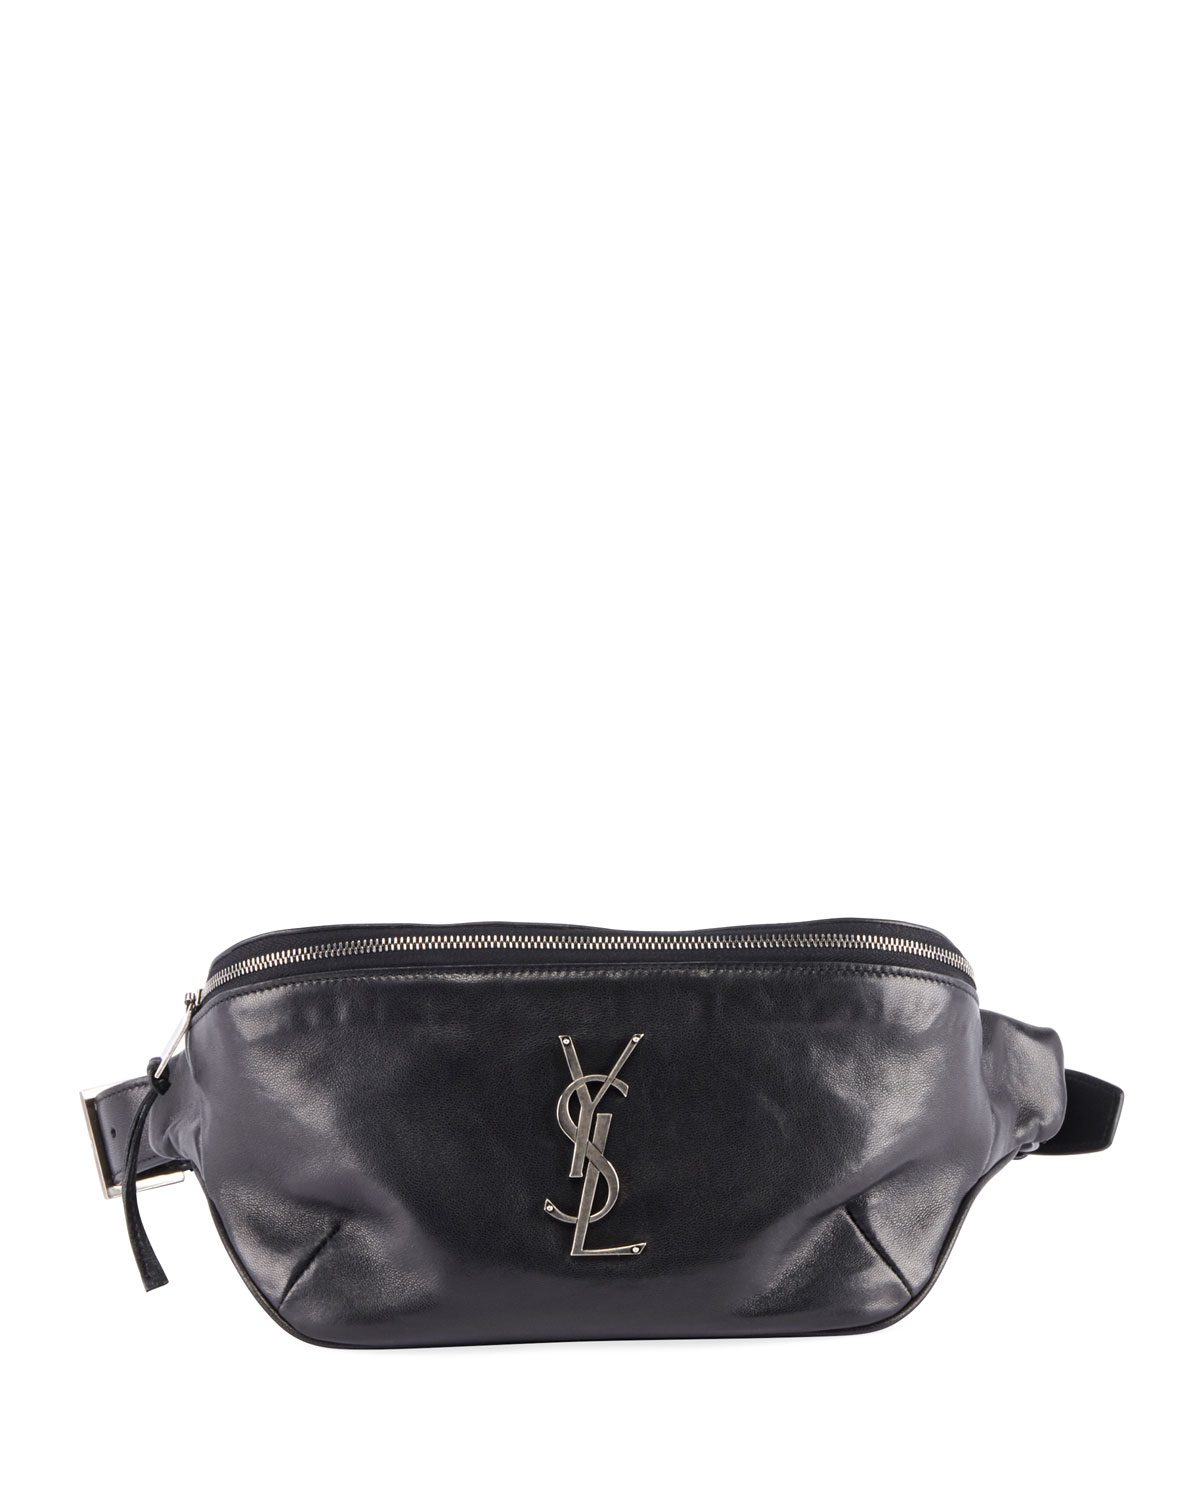 364f29cae81 Saint Laurent YSL Monogram Curved Zip-Top Belt Bag | Neiman Marcus